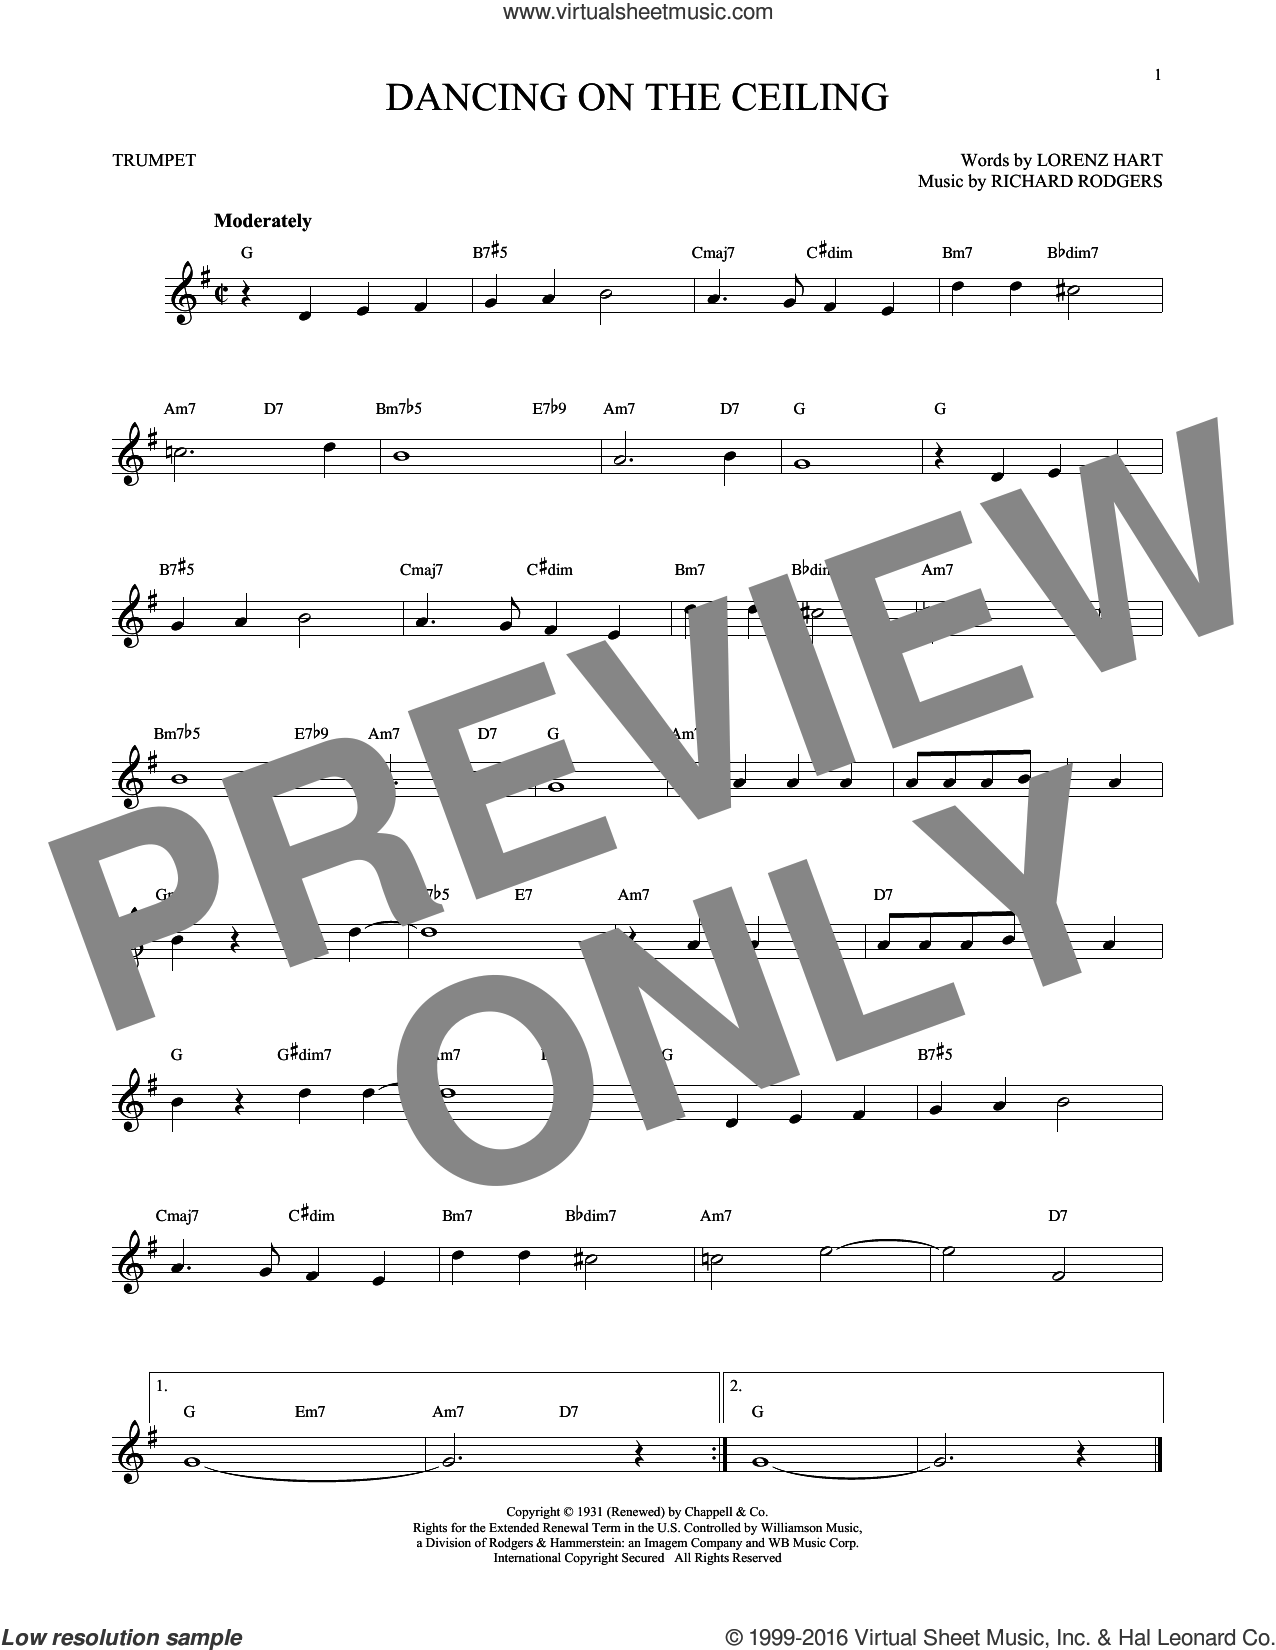 Dancing On The Ceiling sheet music for trumpet solo by Rodgers & Hart, Lorenz Hart and Richard Rodgers, intermediate skill level